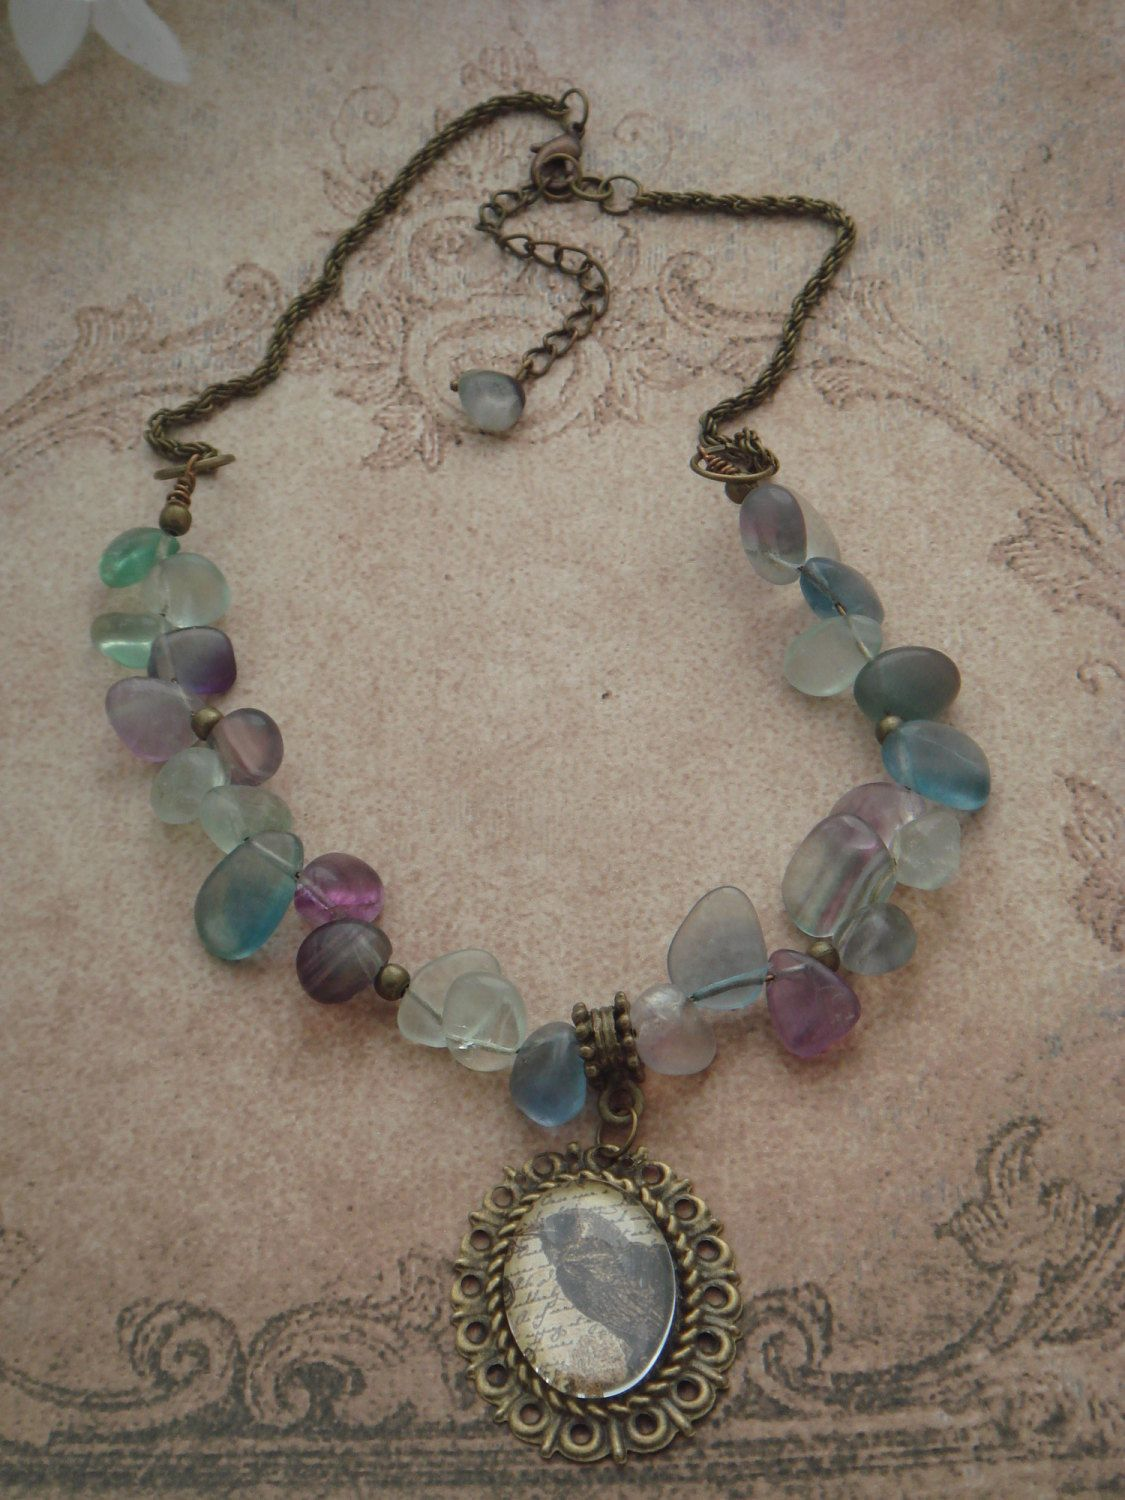 FLUORITE RAVEN NECKLACE Made from Fluorite drops on antique bronze chain, featuring a raven cabochon pendant. £25.00